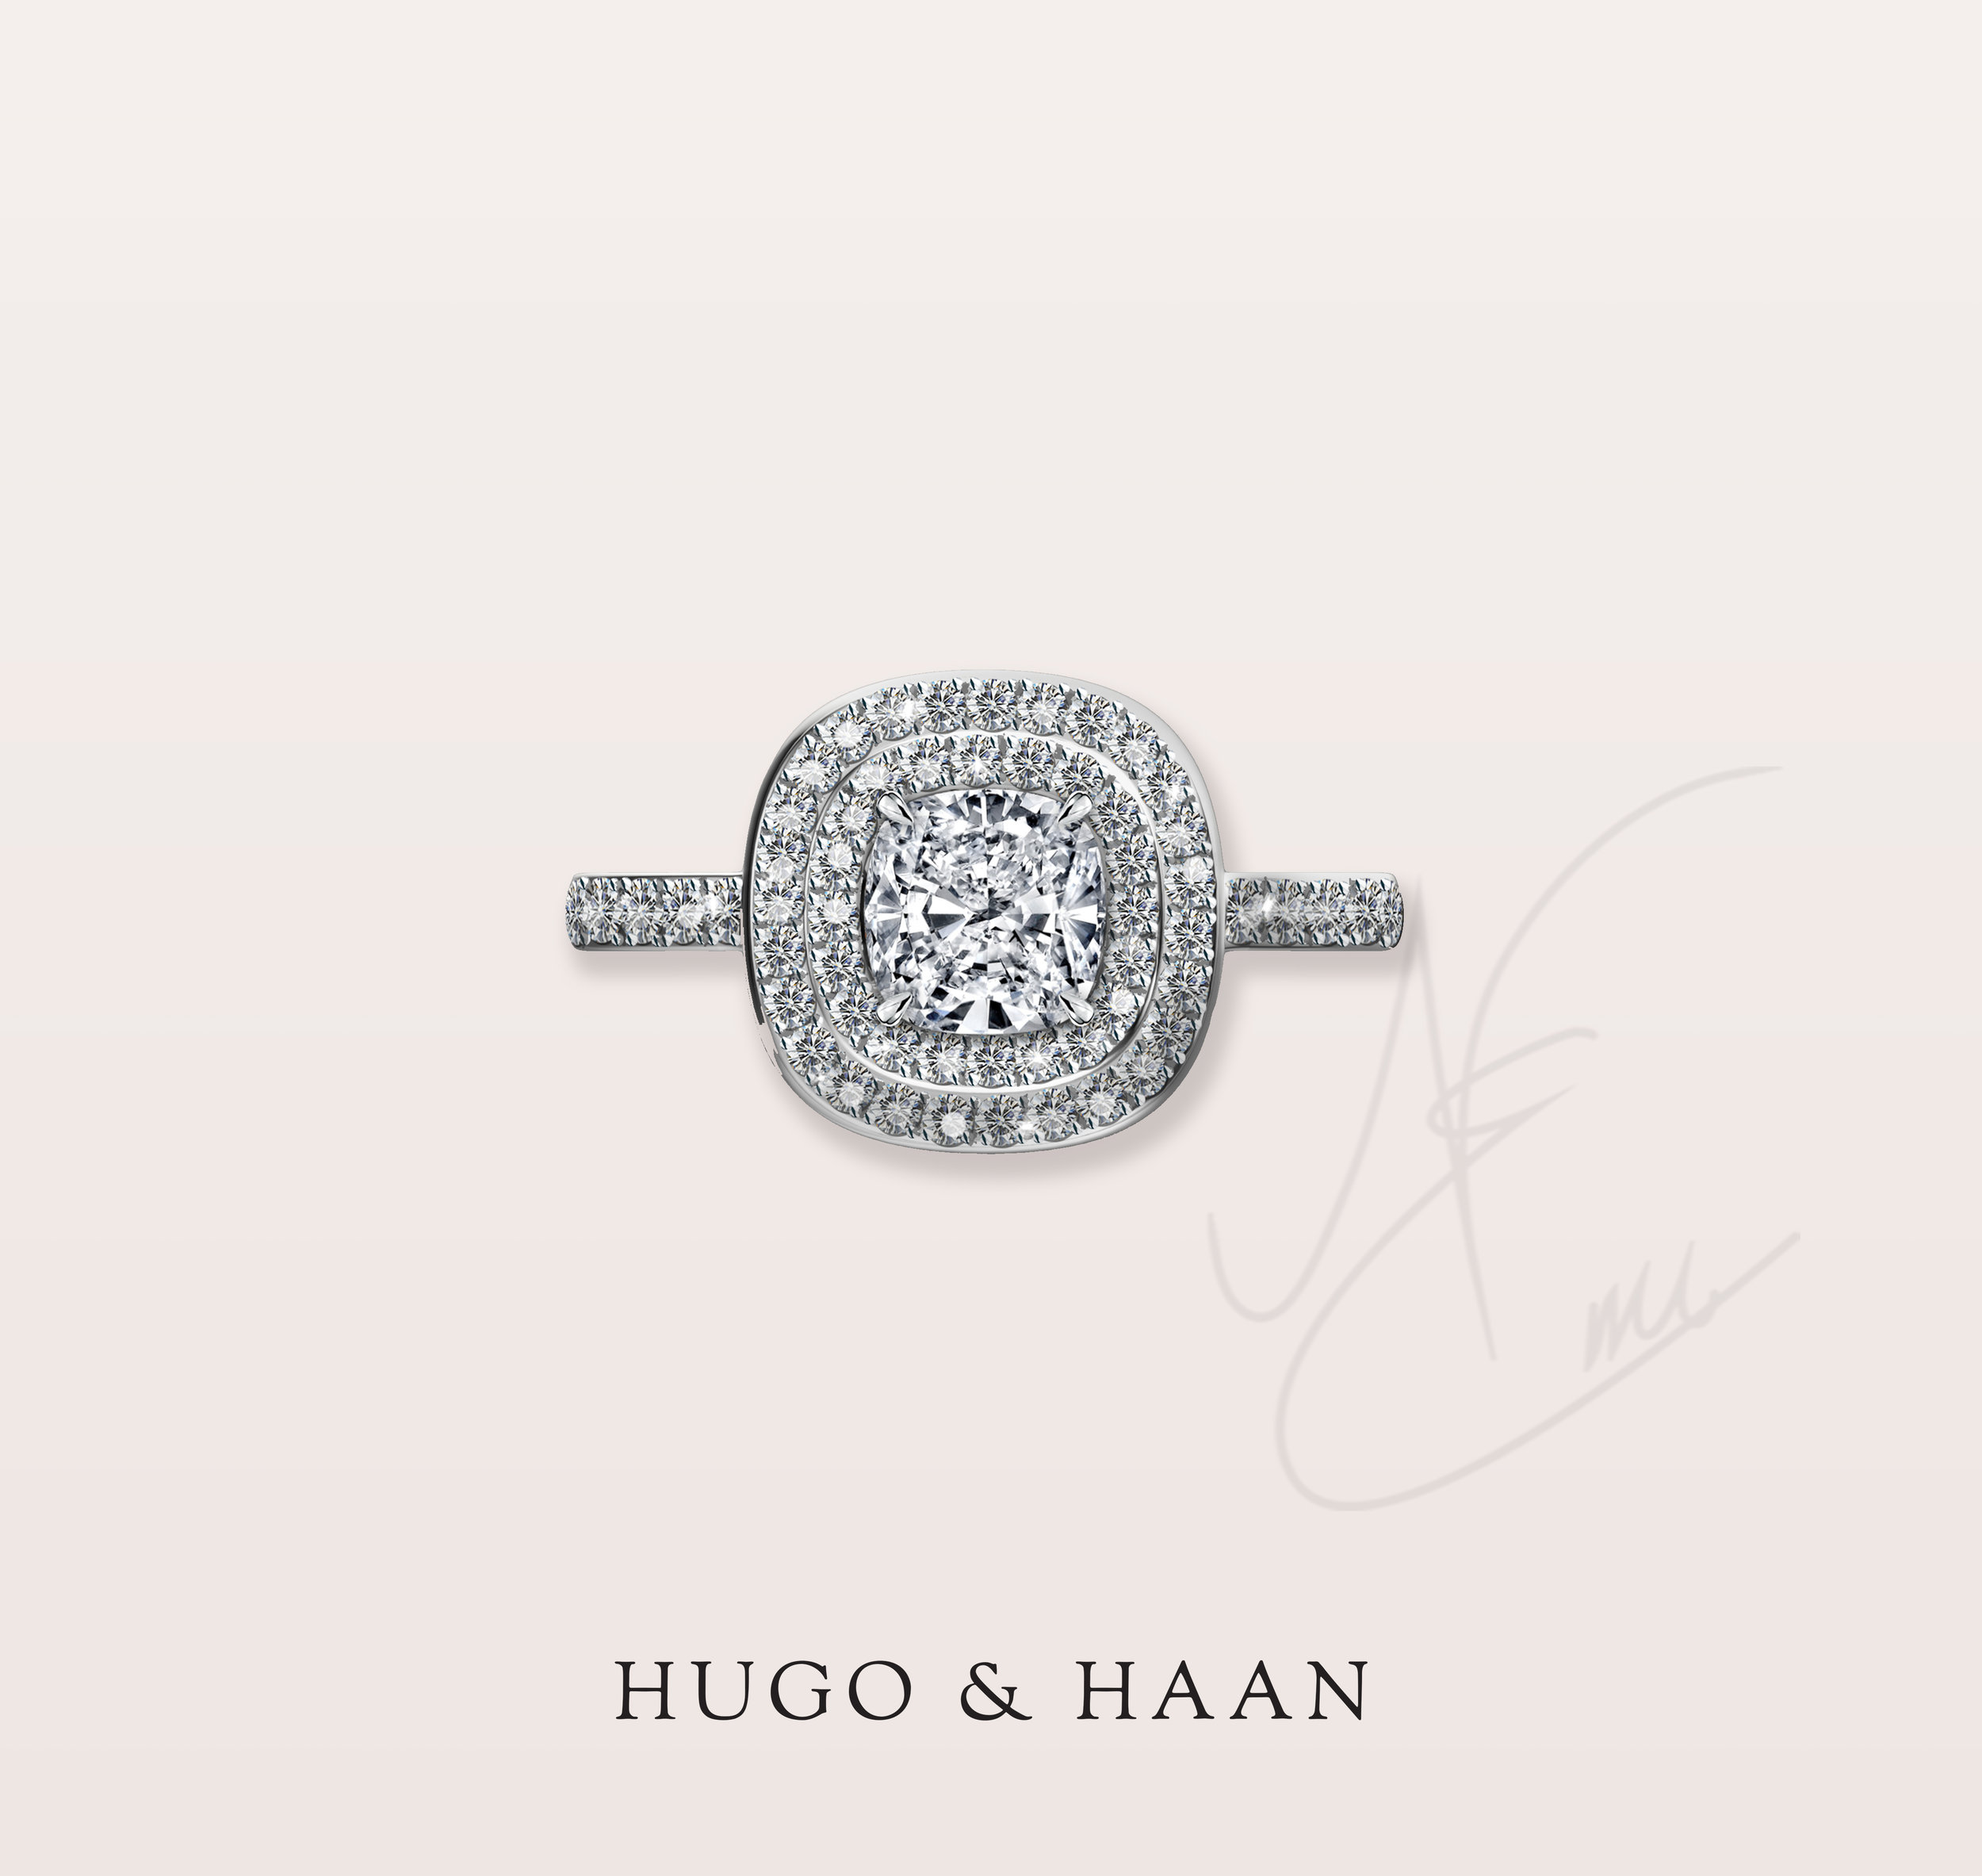 Twinkling diamond halo - Our customer has approached us with a specific design idea that he had in mind for this very special engagement ring. He wanted a cushion cut double halo design with diamonds on the side of the shank as well. A true show stopper engagement ring.